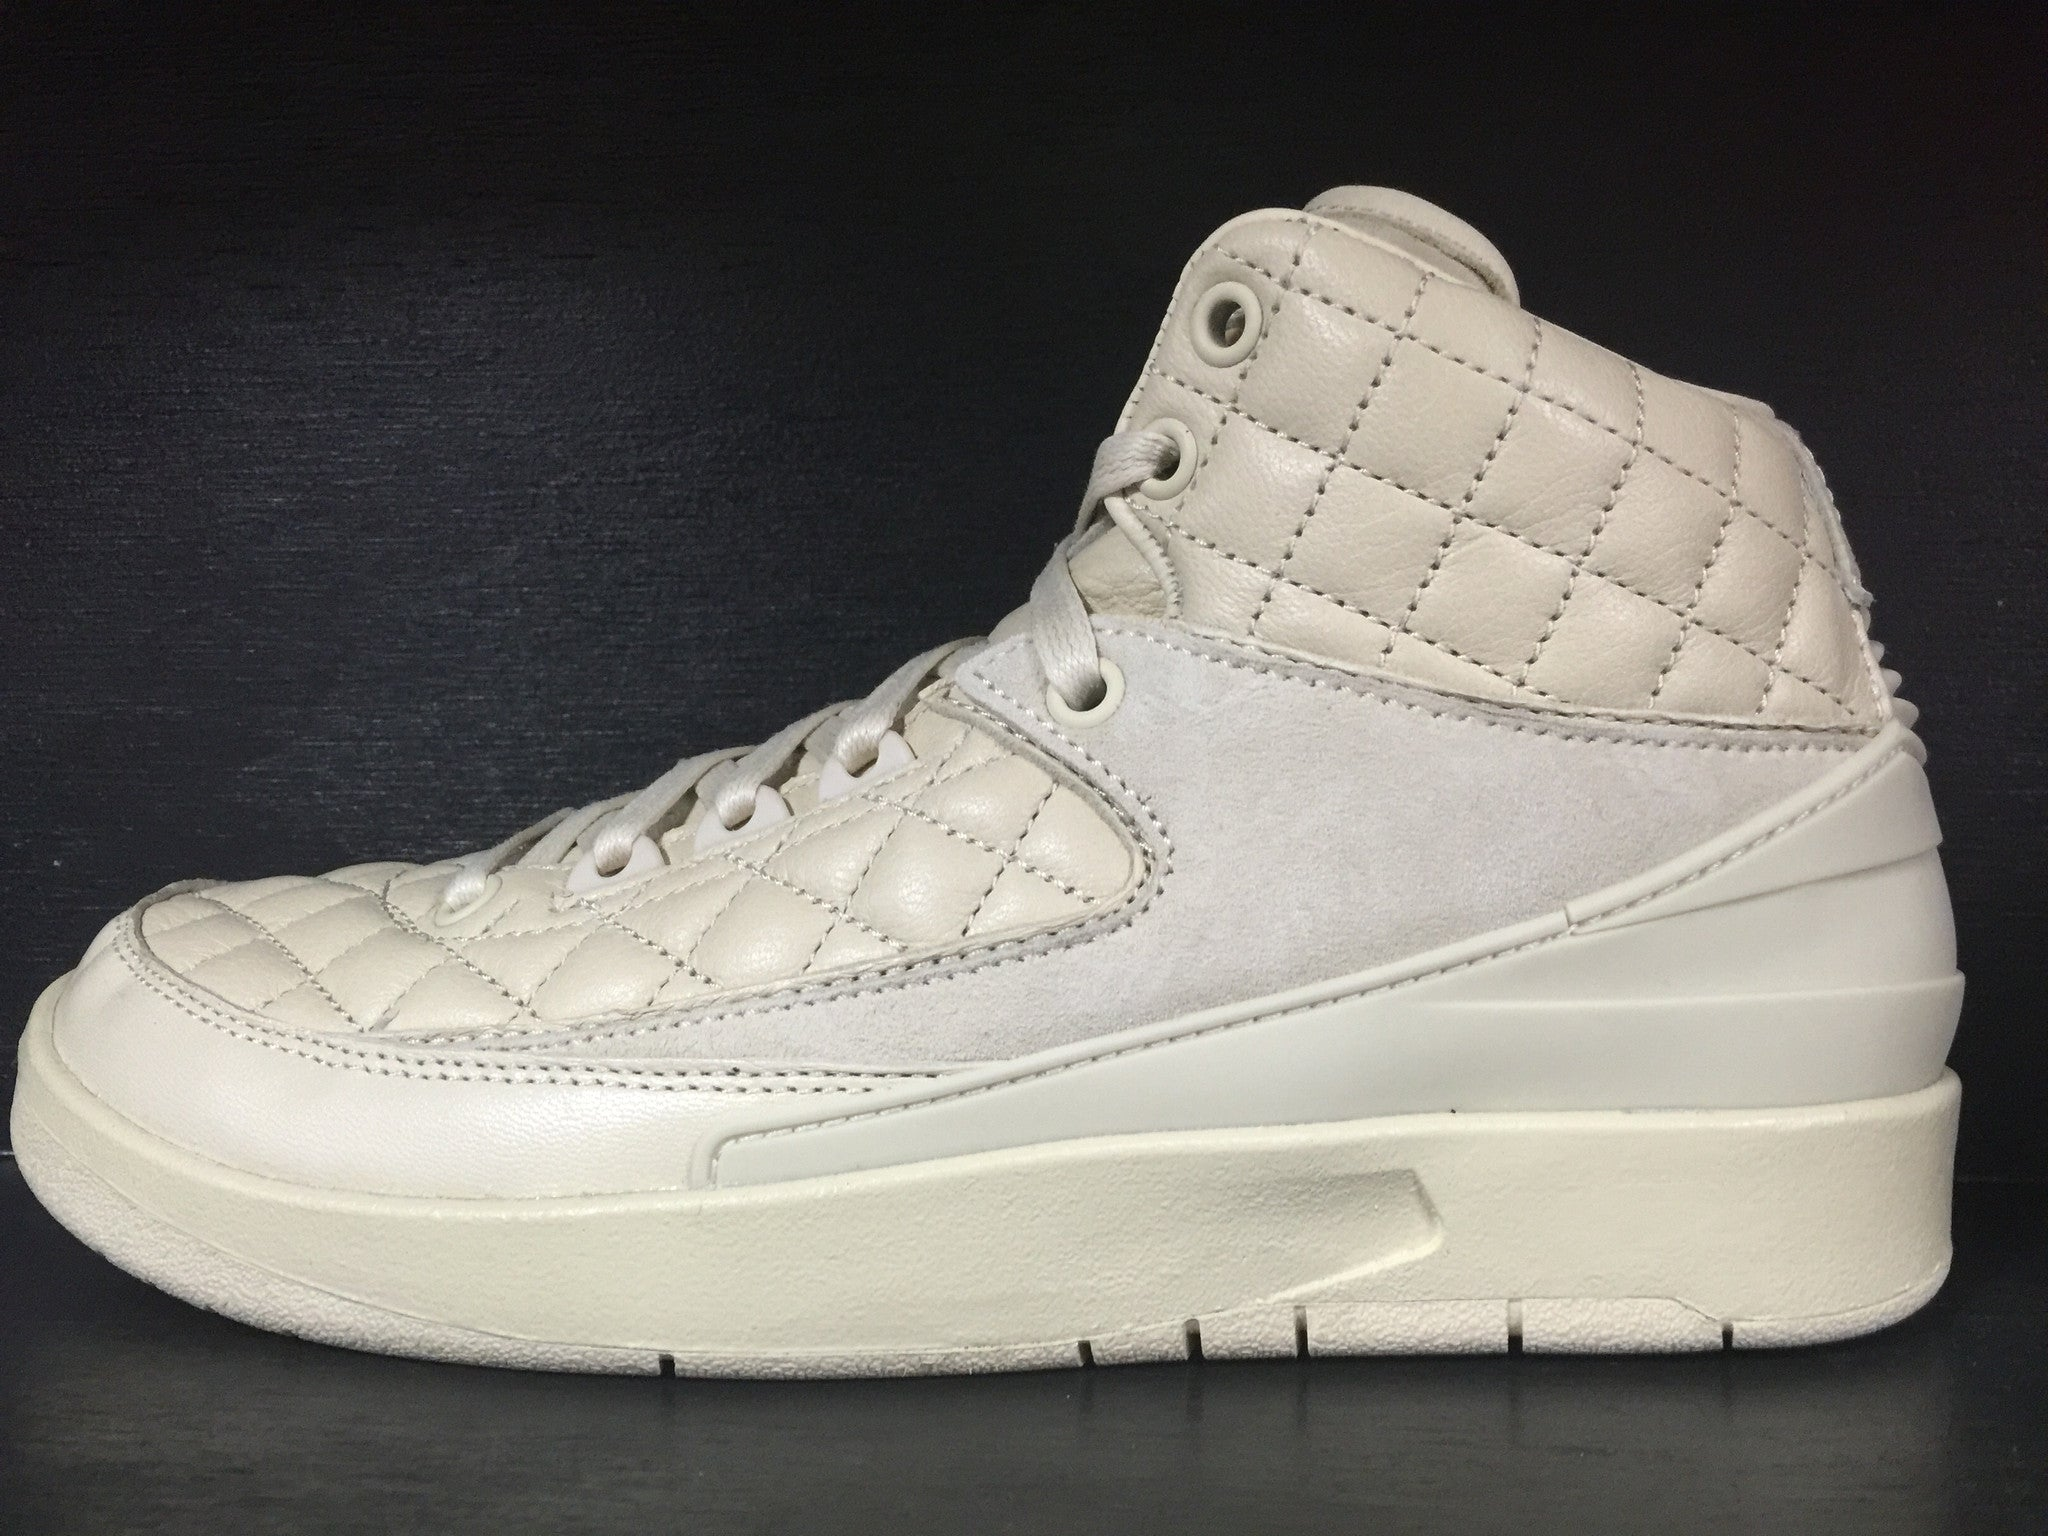 Air Jordan 2 Retro Just Don BG 'Beach'